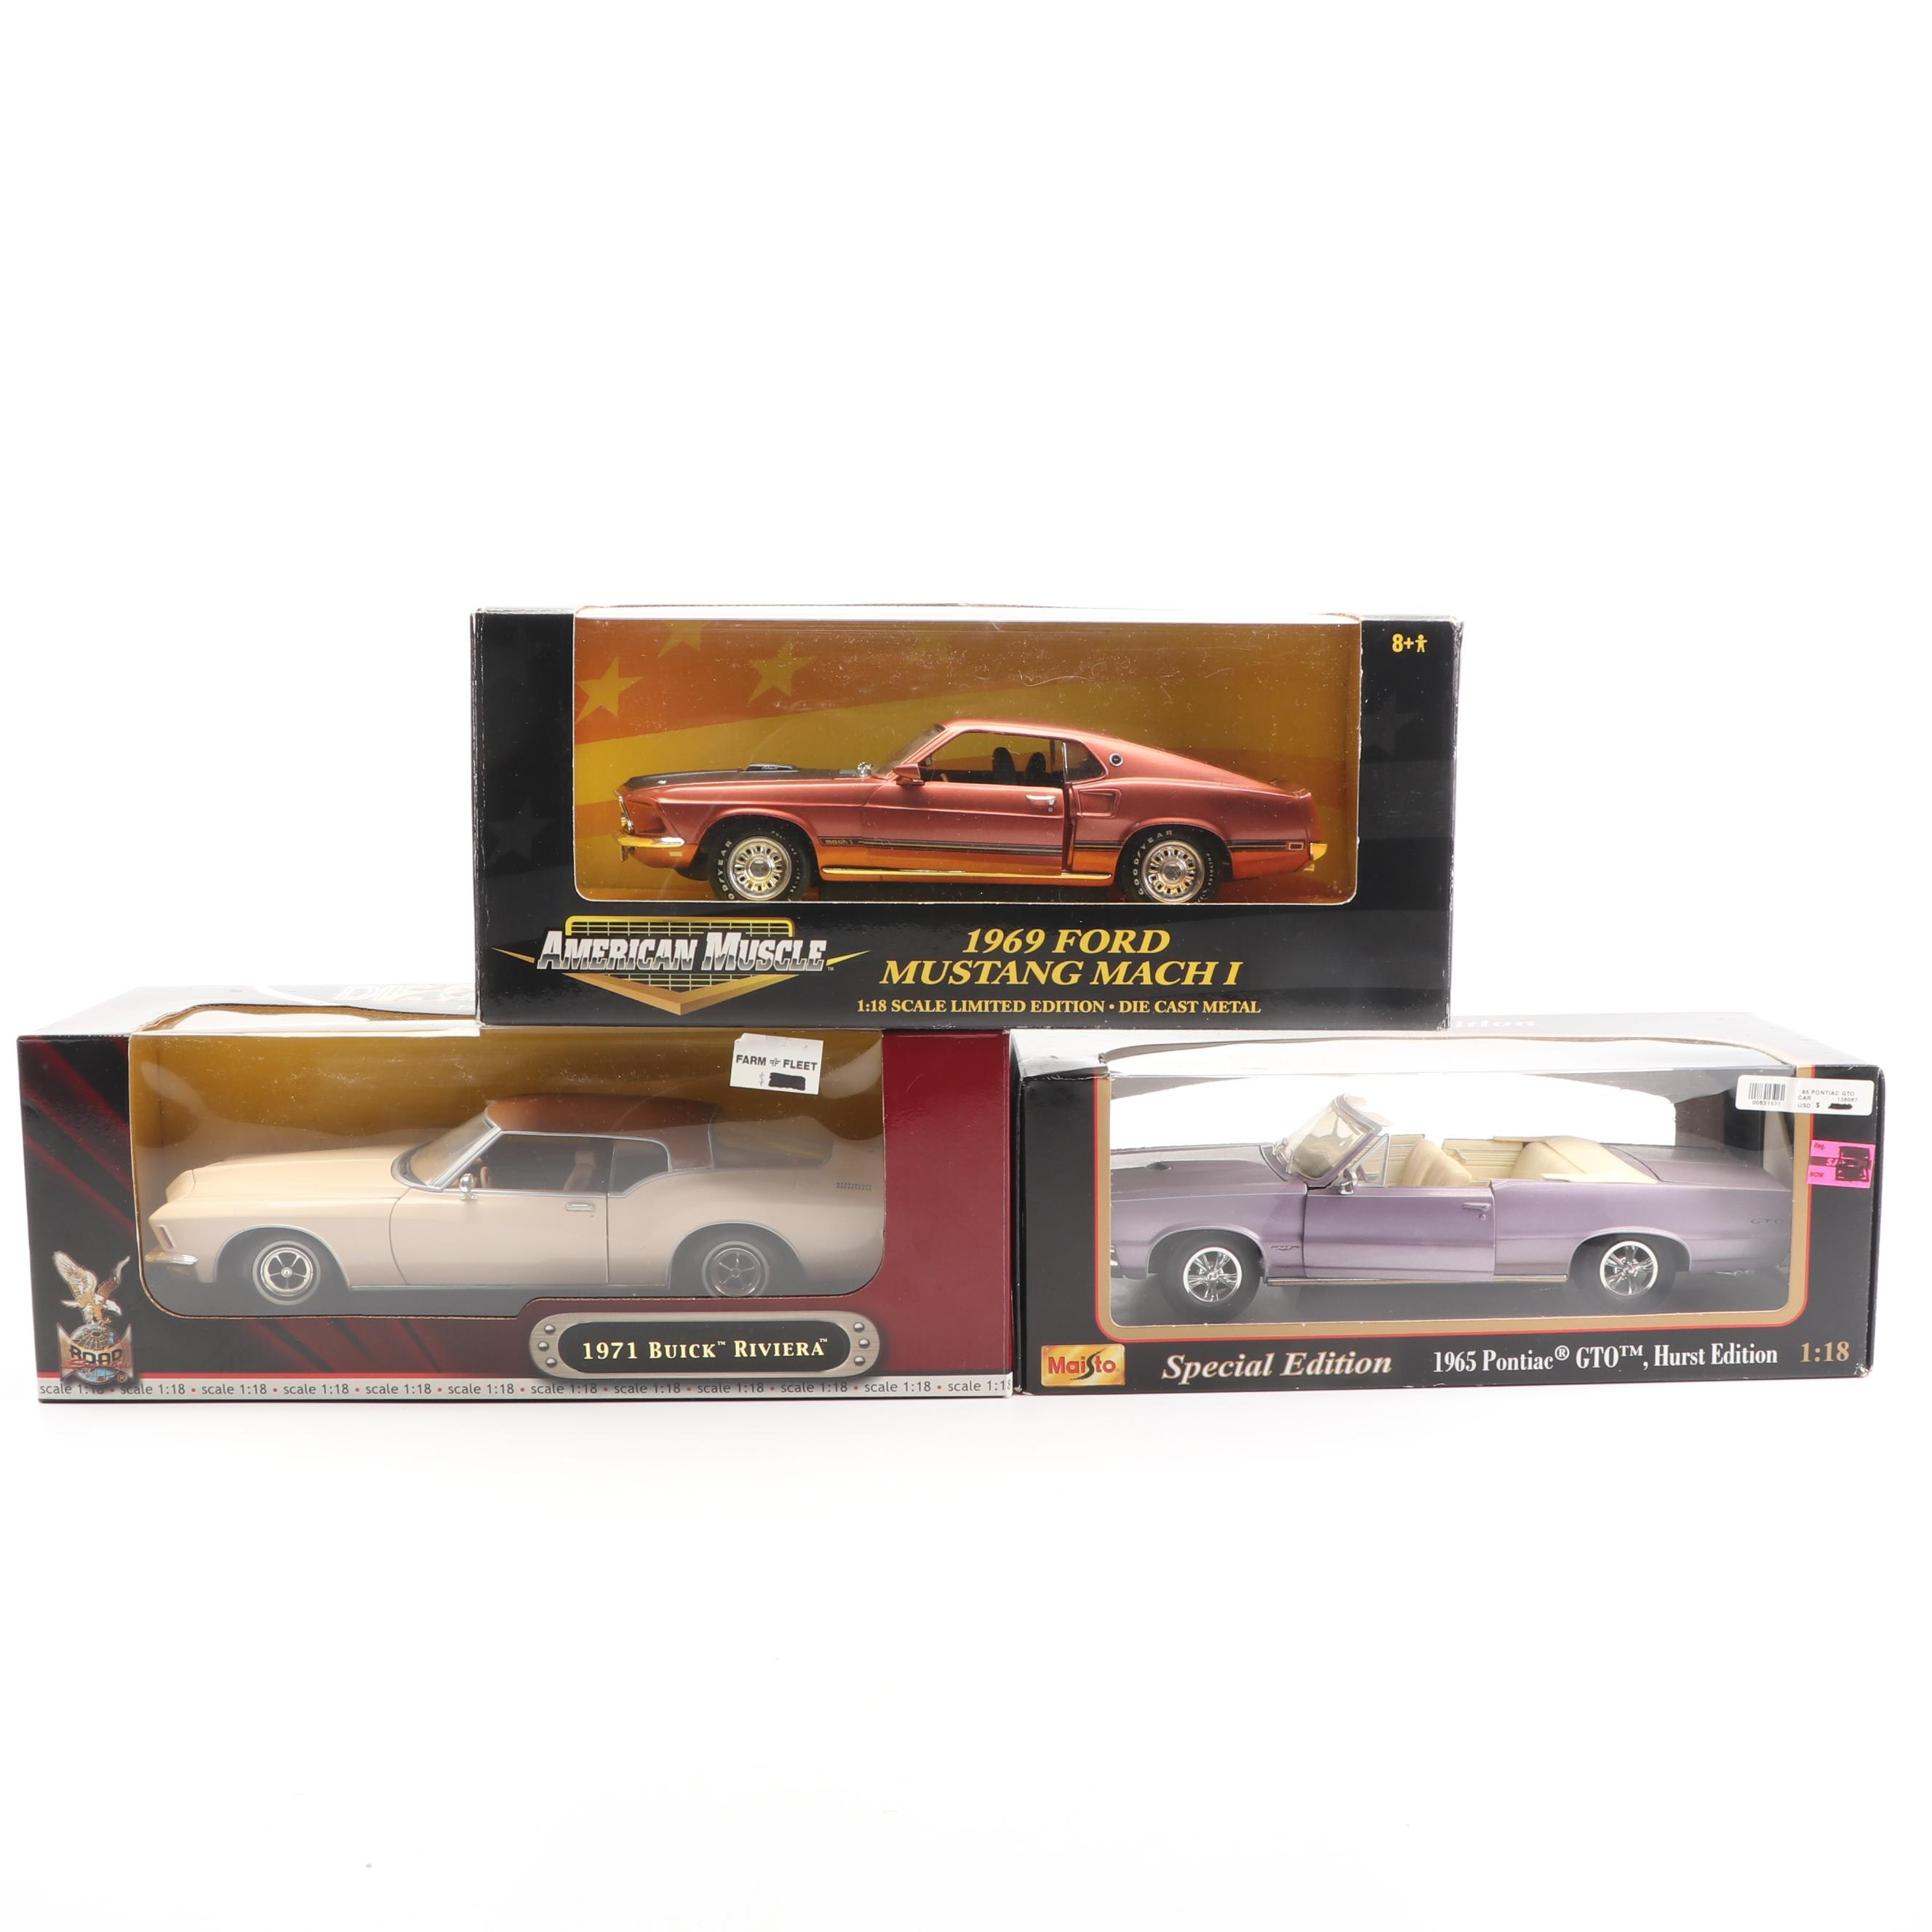 1960s-1970s Die-Cast Cars including Maisto and American Muscle